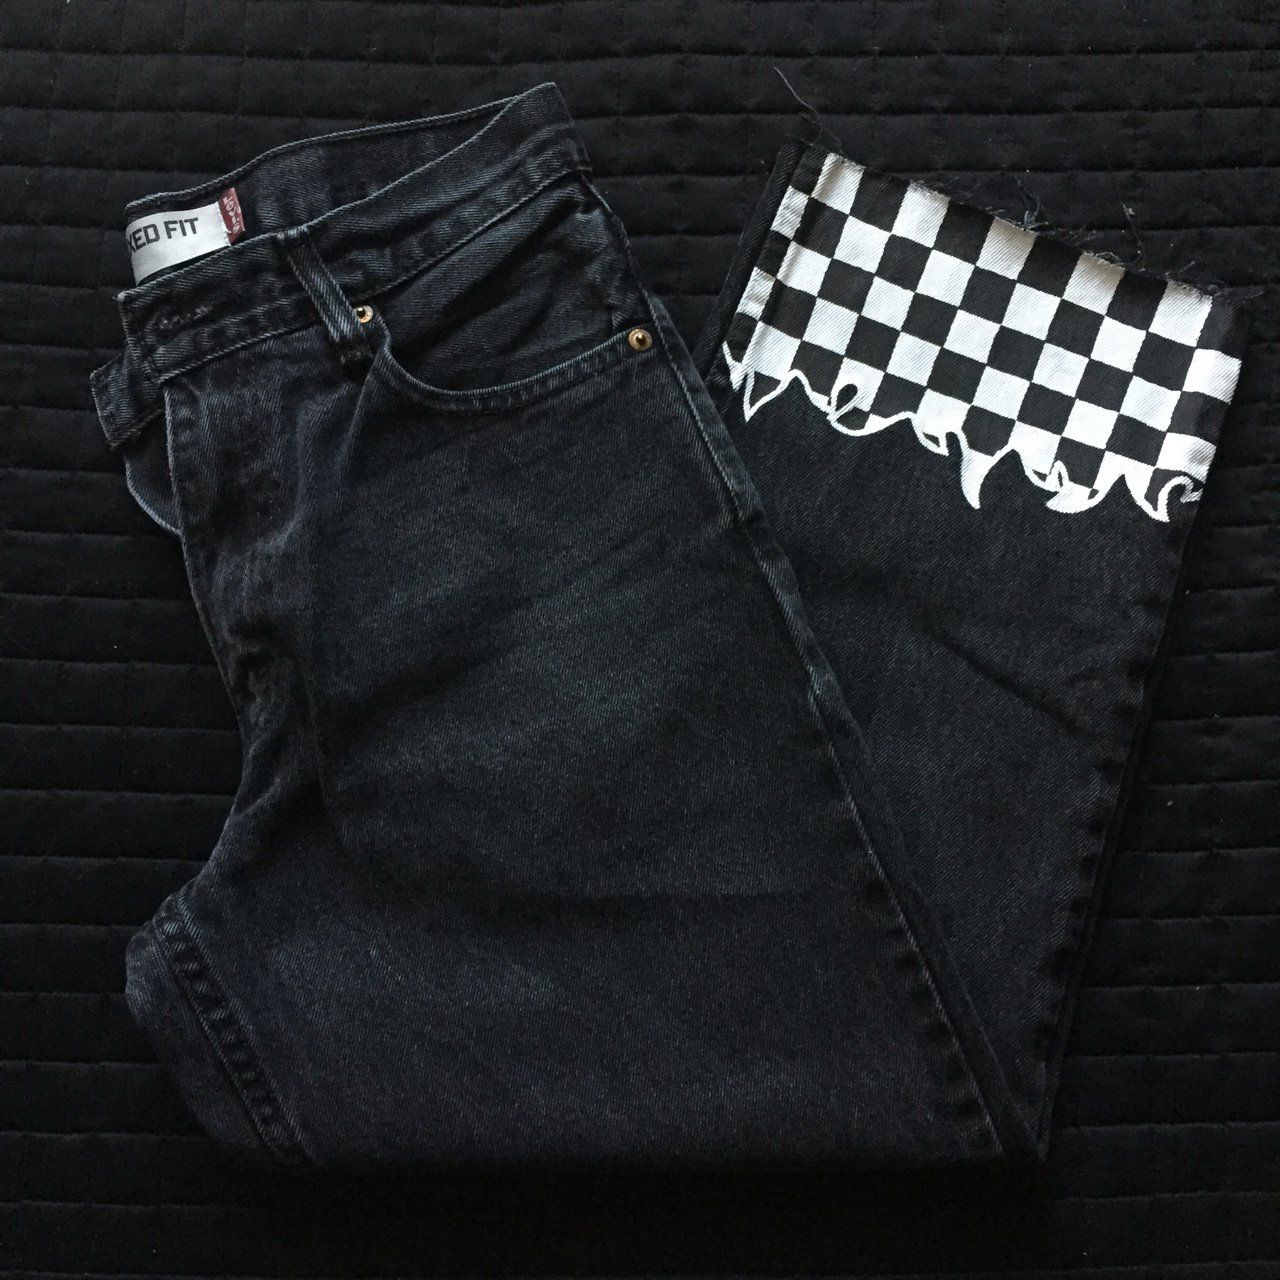 187f24080a52 check out these black and white checkered flame jeans! these babies ...